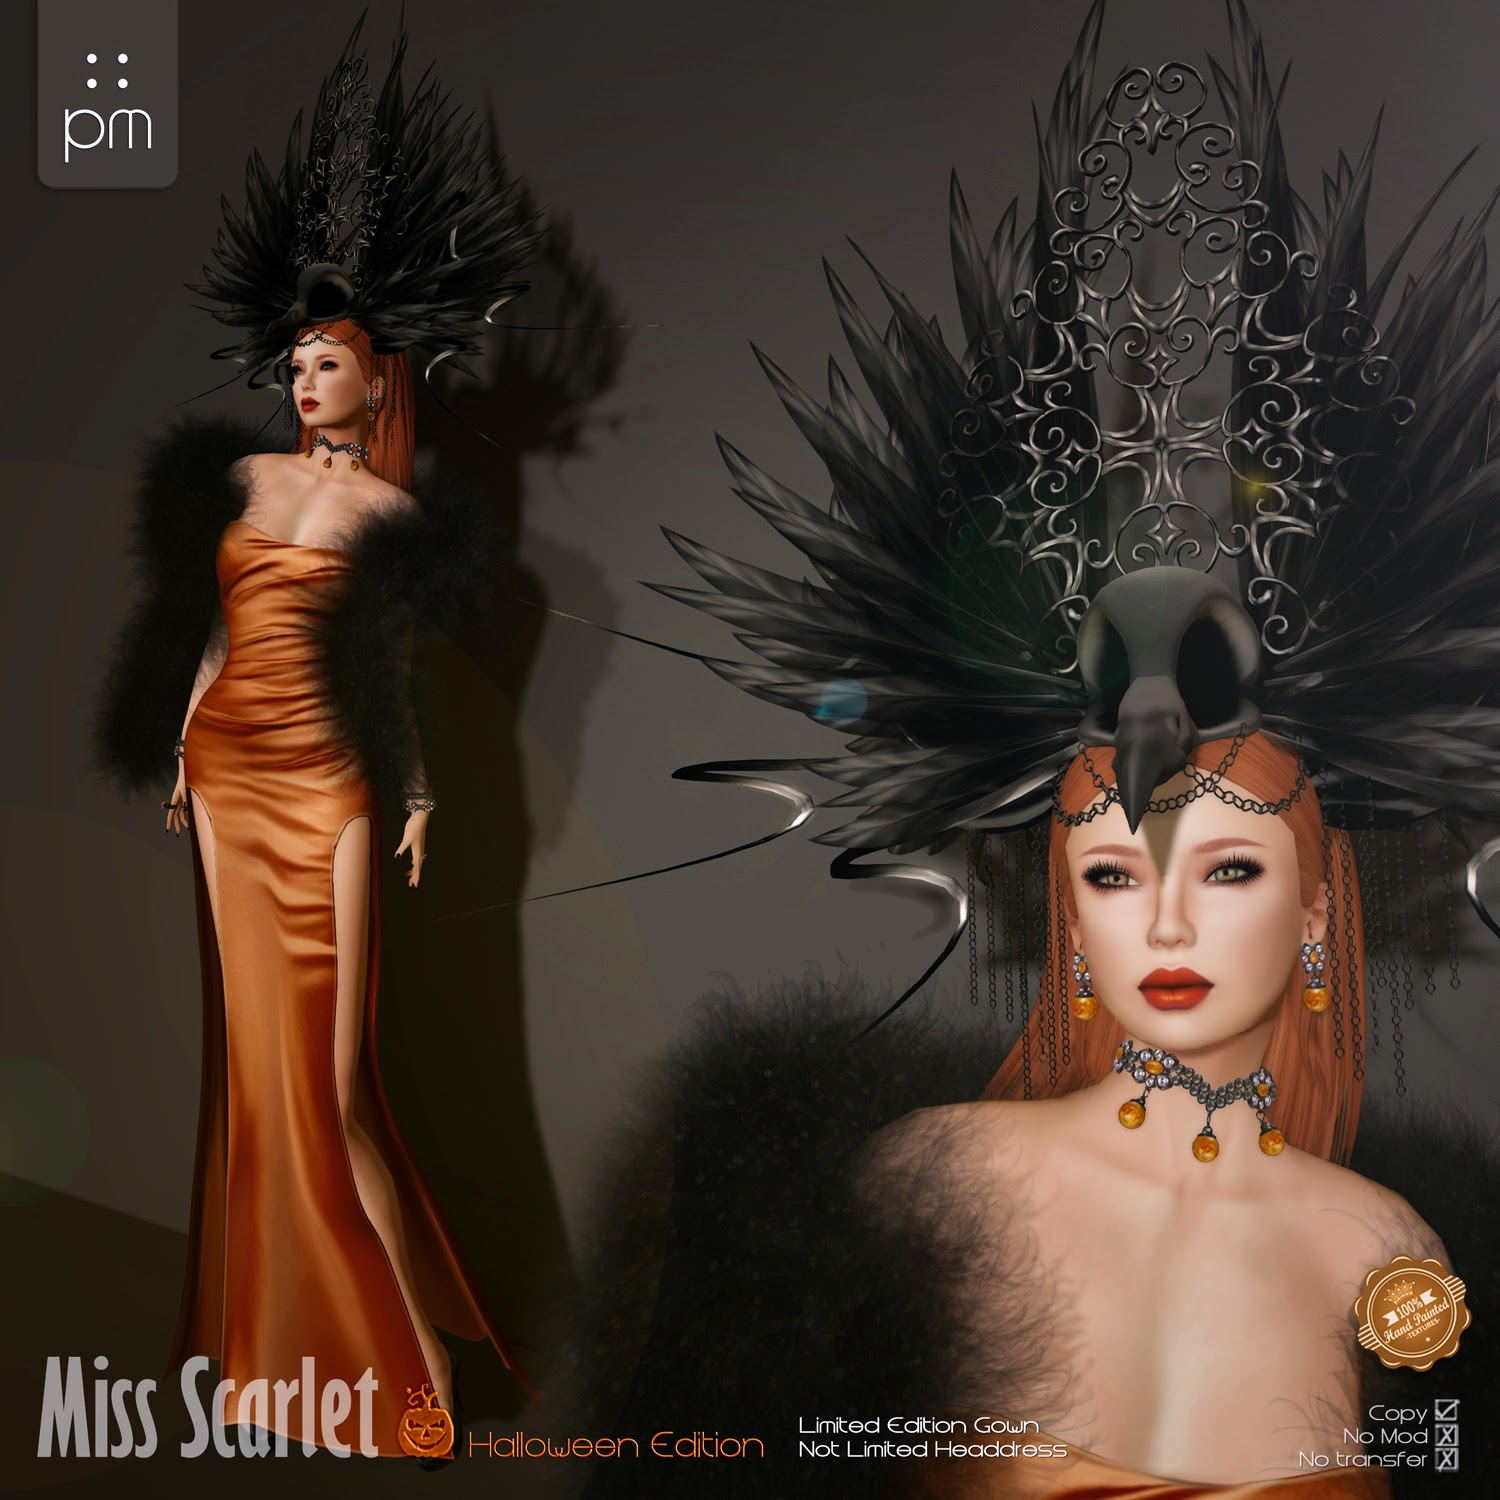 https://marketplace.secondlife.com/p/PM-Miss-Scarlet-Dress-Flying-Spirit-Headpiece/6517767